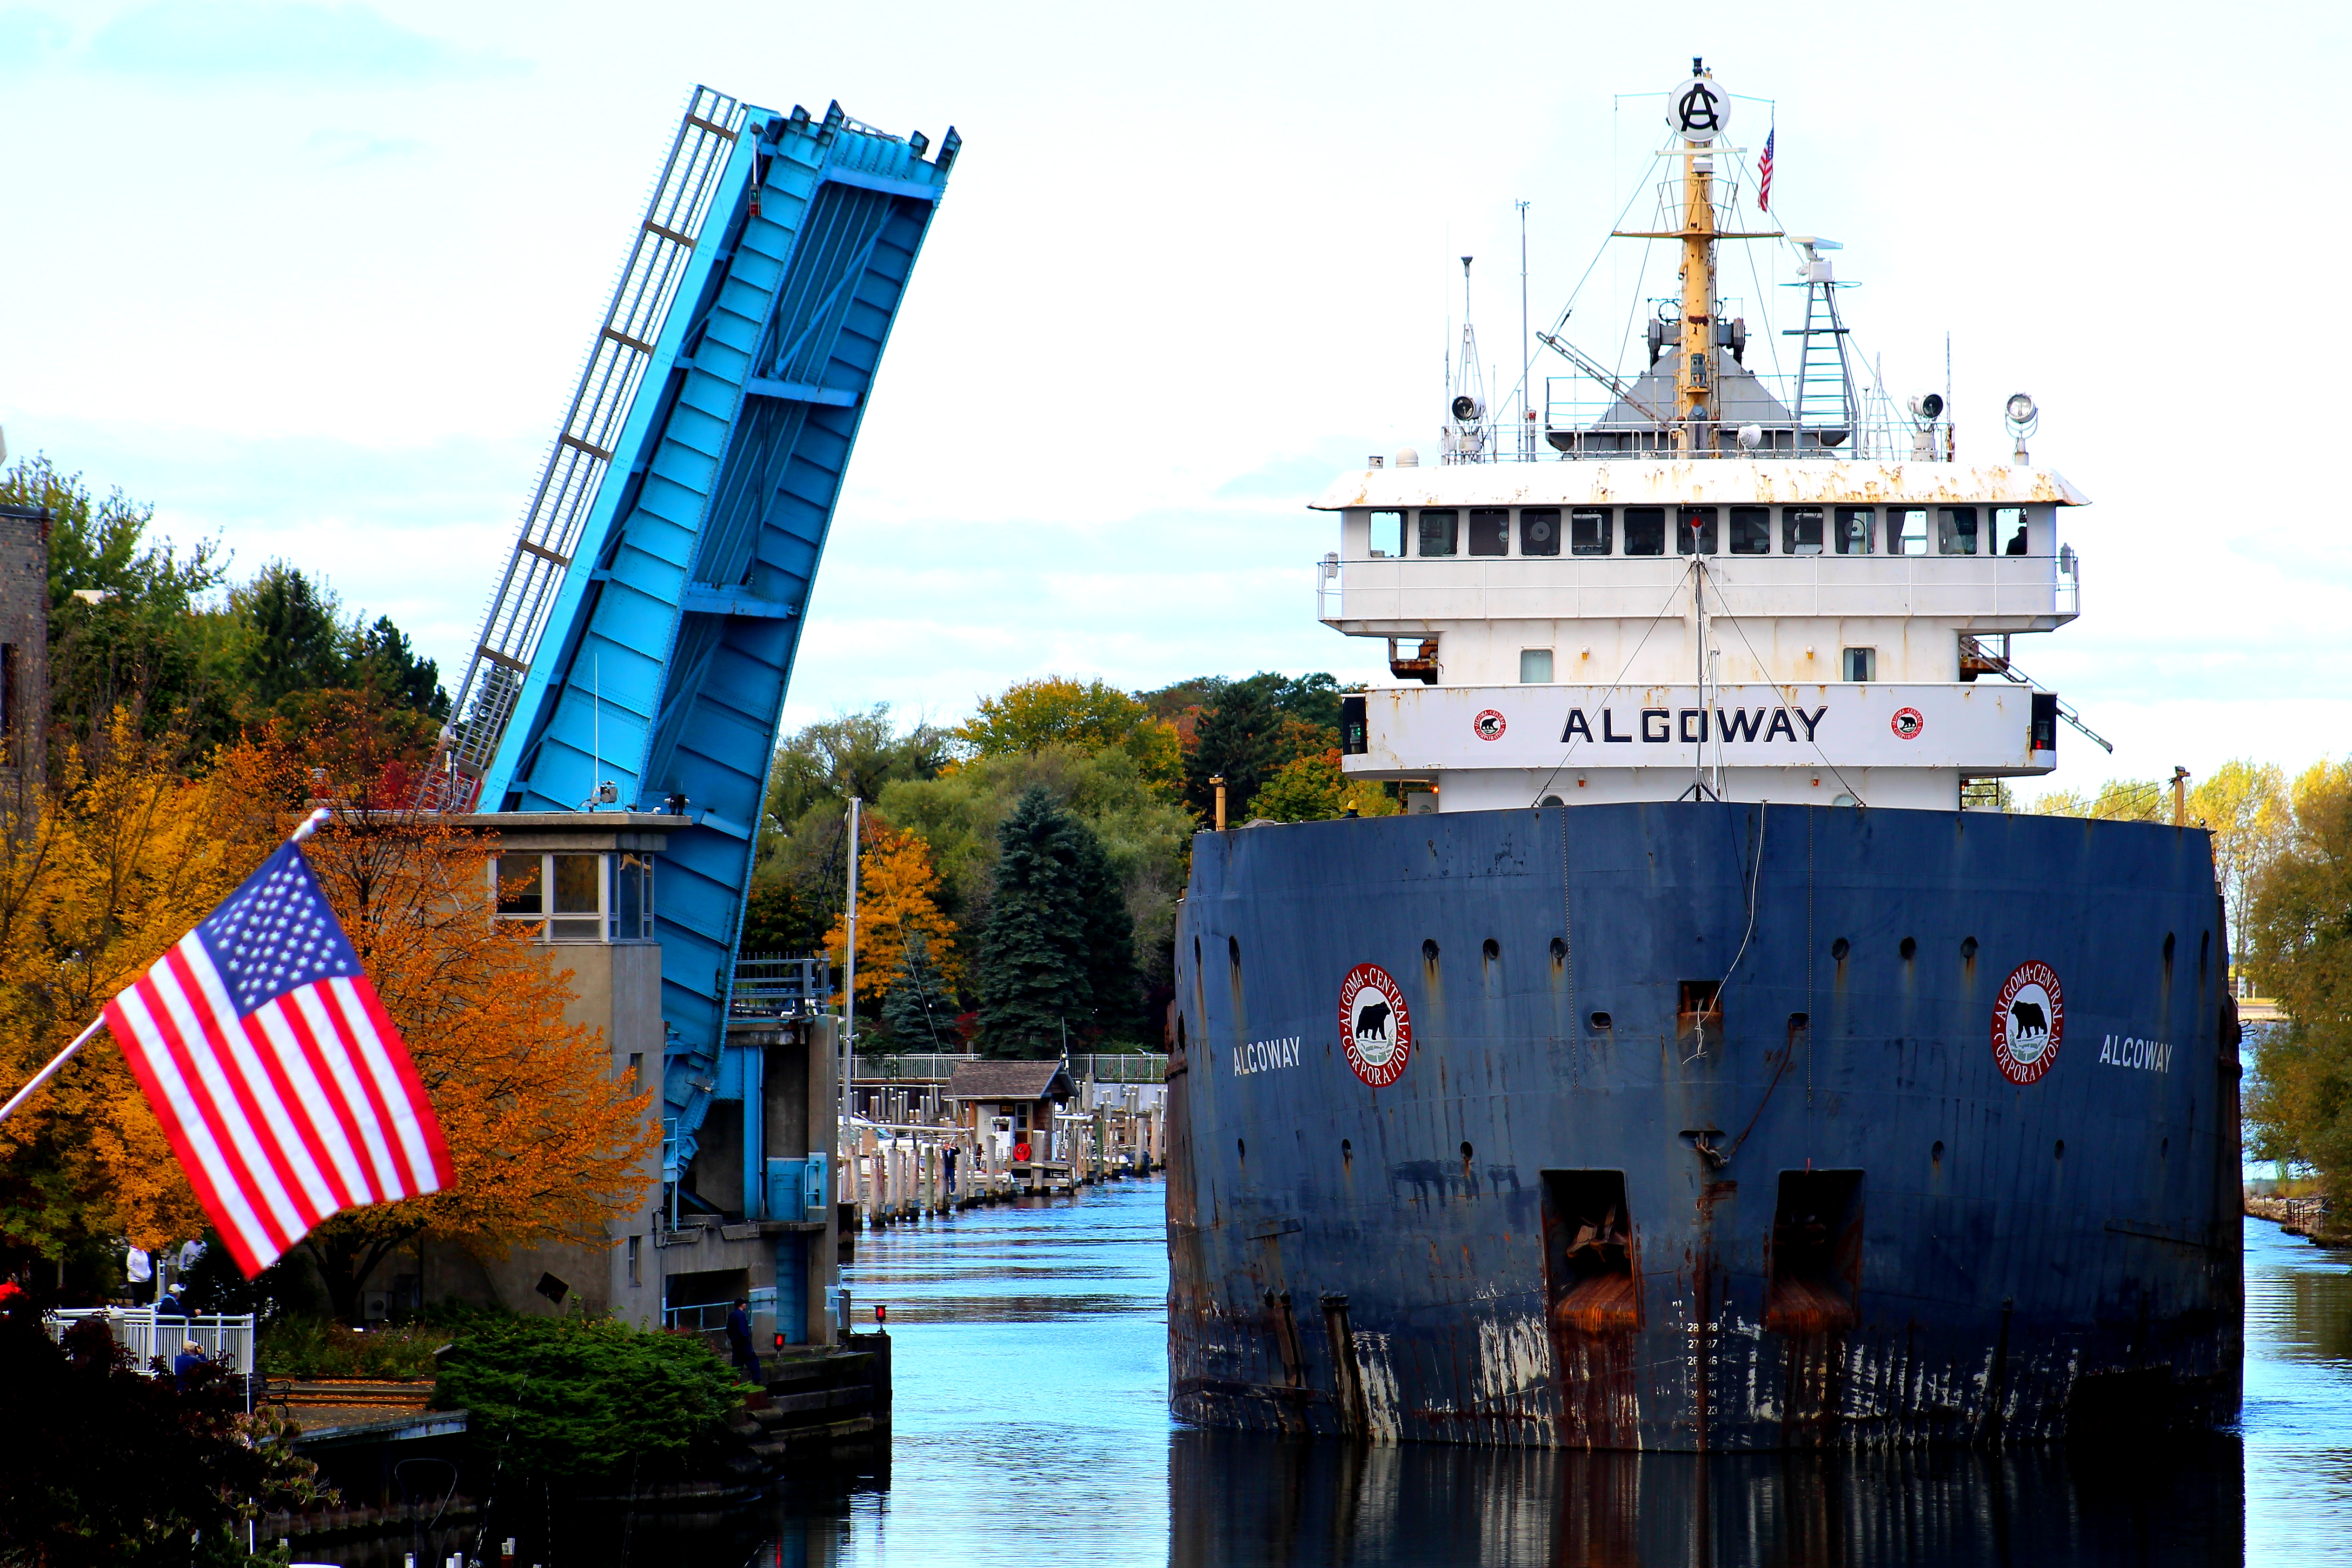 Freighter Algoway in the Mansitee River Channel at Maple Street Bridge with a US Flag in the foreground of the picture on a fall day when the leaves are changing on the trees in the background